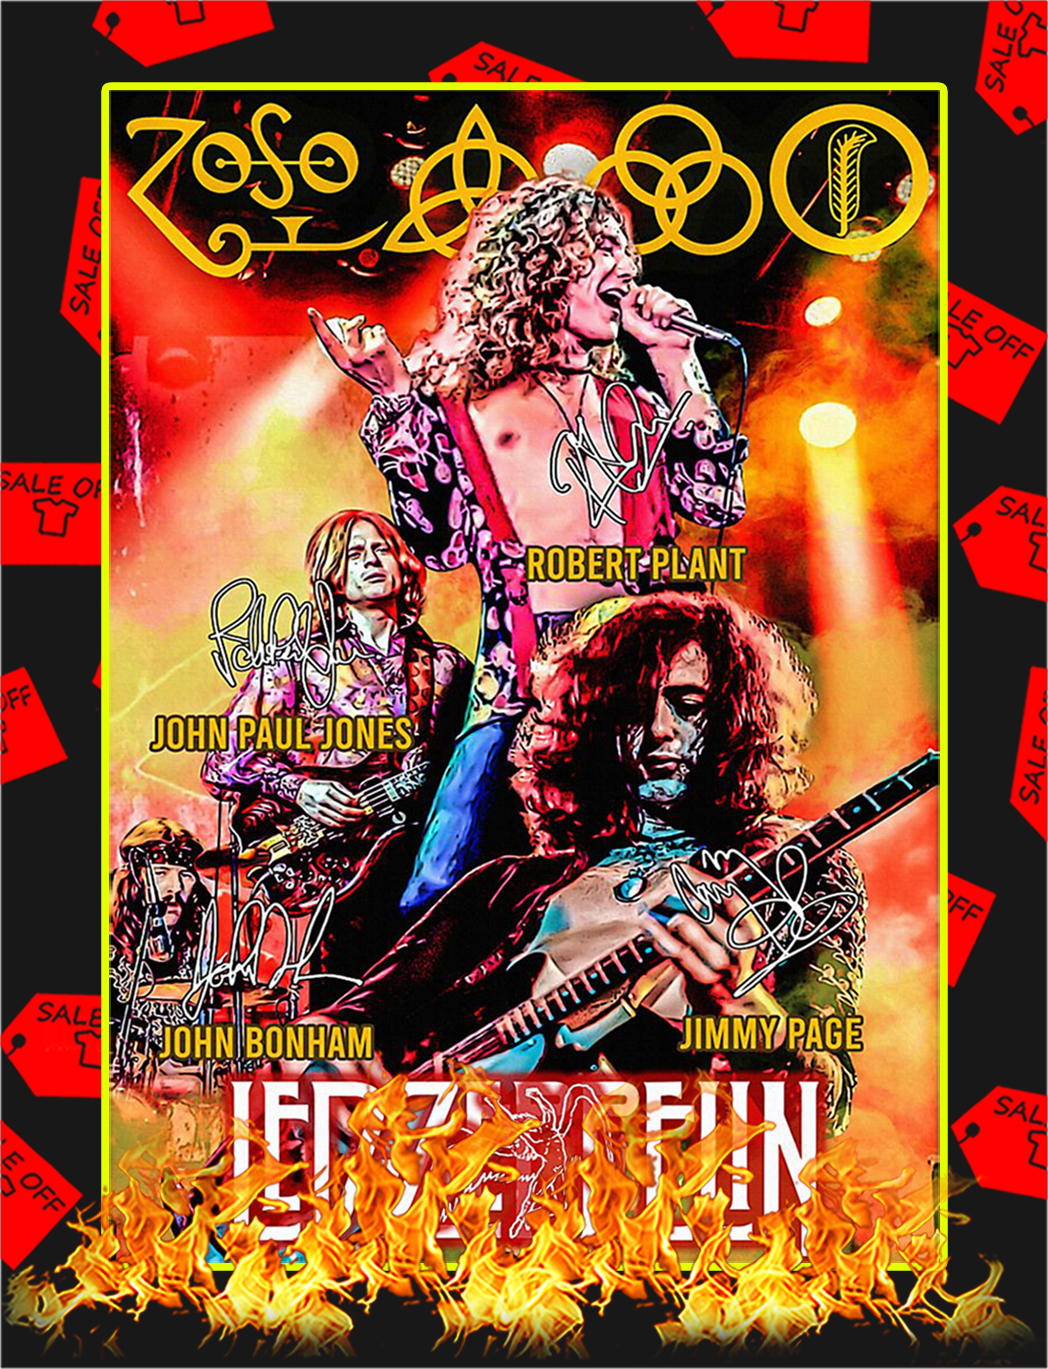 Led Zeppelin Signature Poster - A1